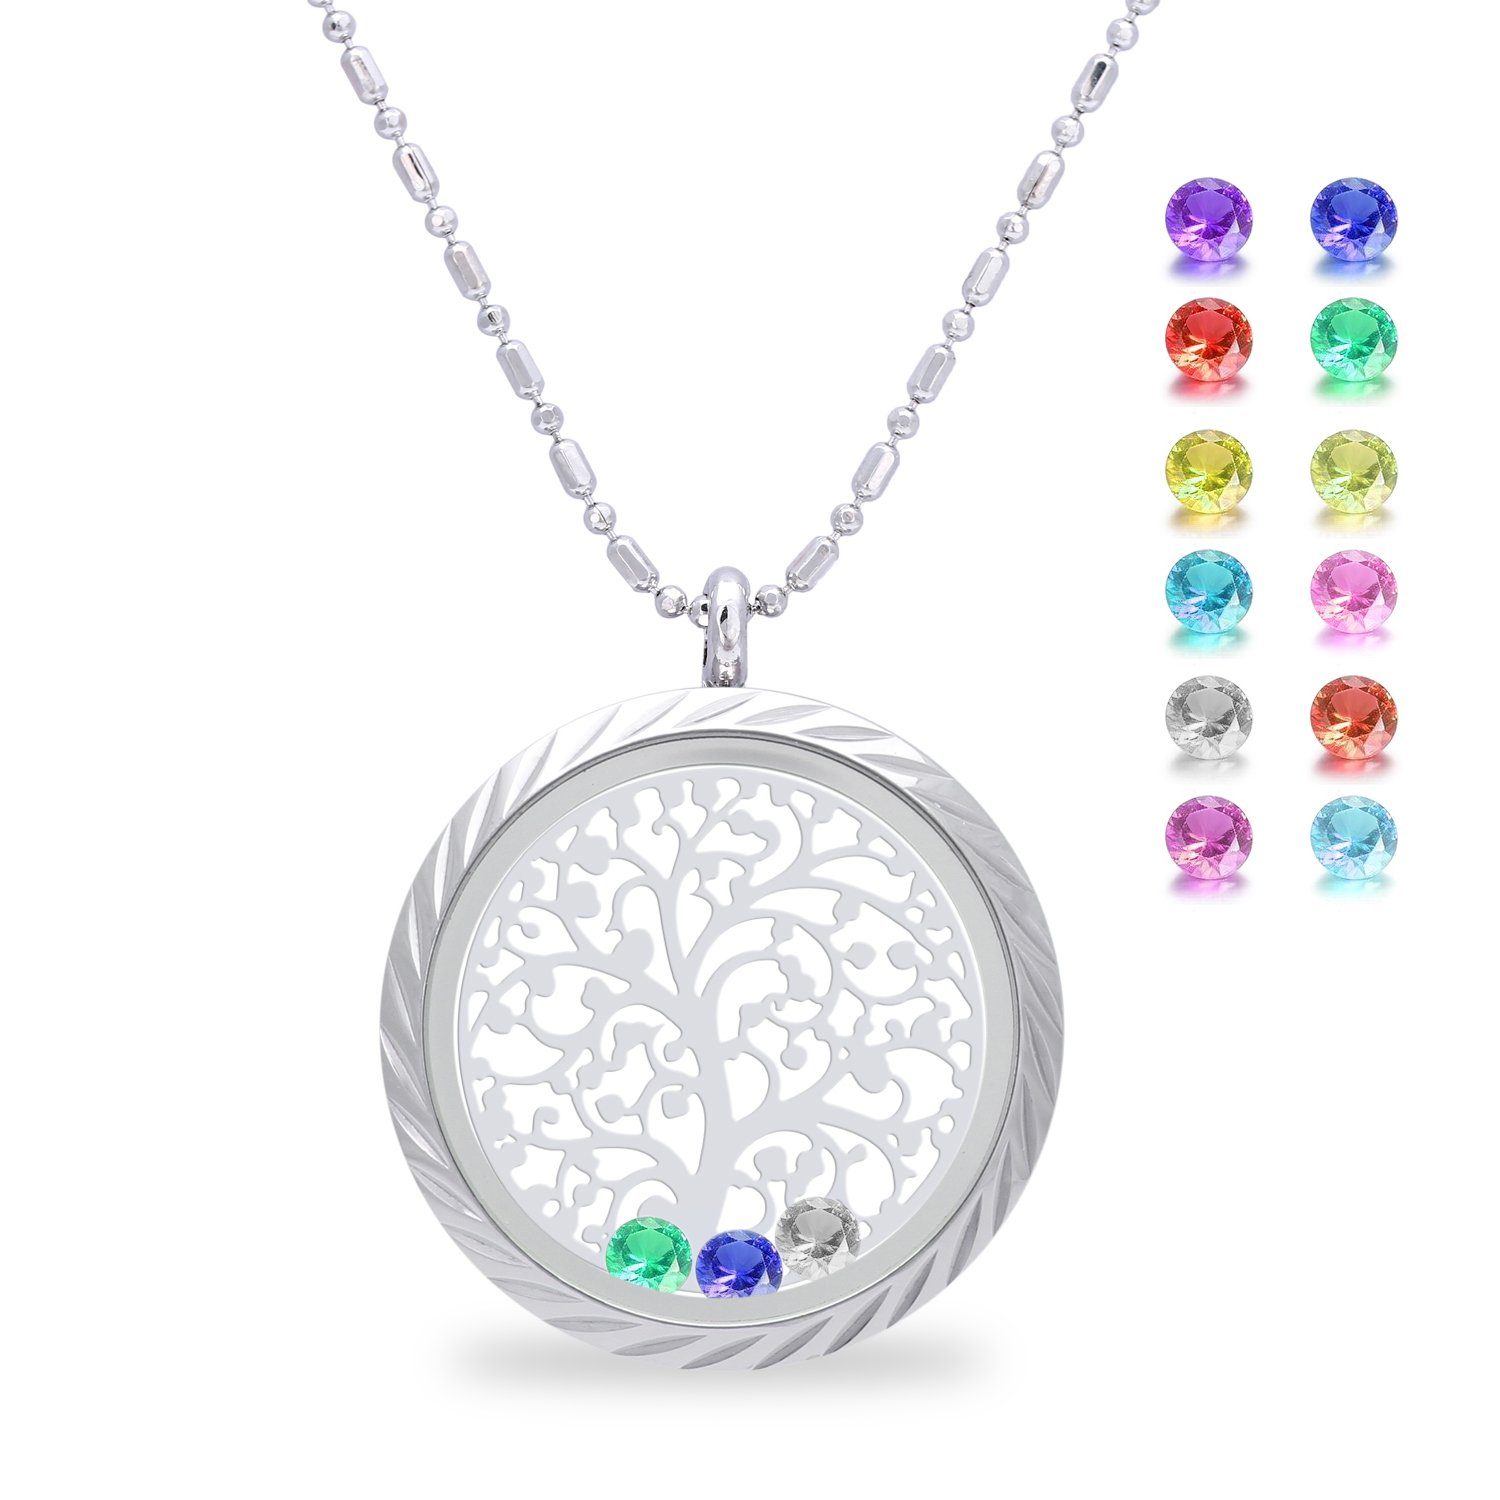 Family Tree of life Screw Floating Charm Living Memory Locket Pendant Necklace for mothers birthday Gifts for mom, daughter, her, wife, sister, christmas, girls, women, Grandmother(Engraving)